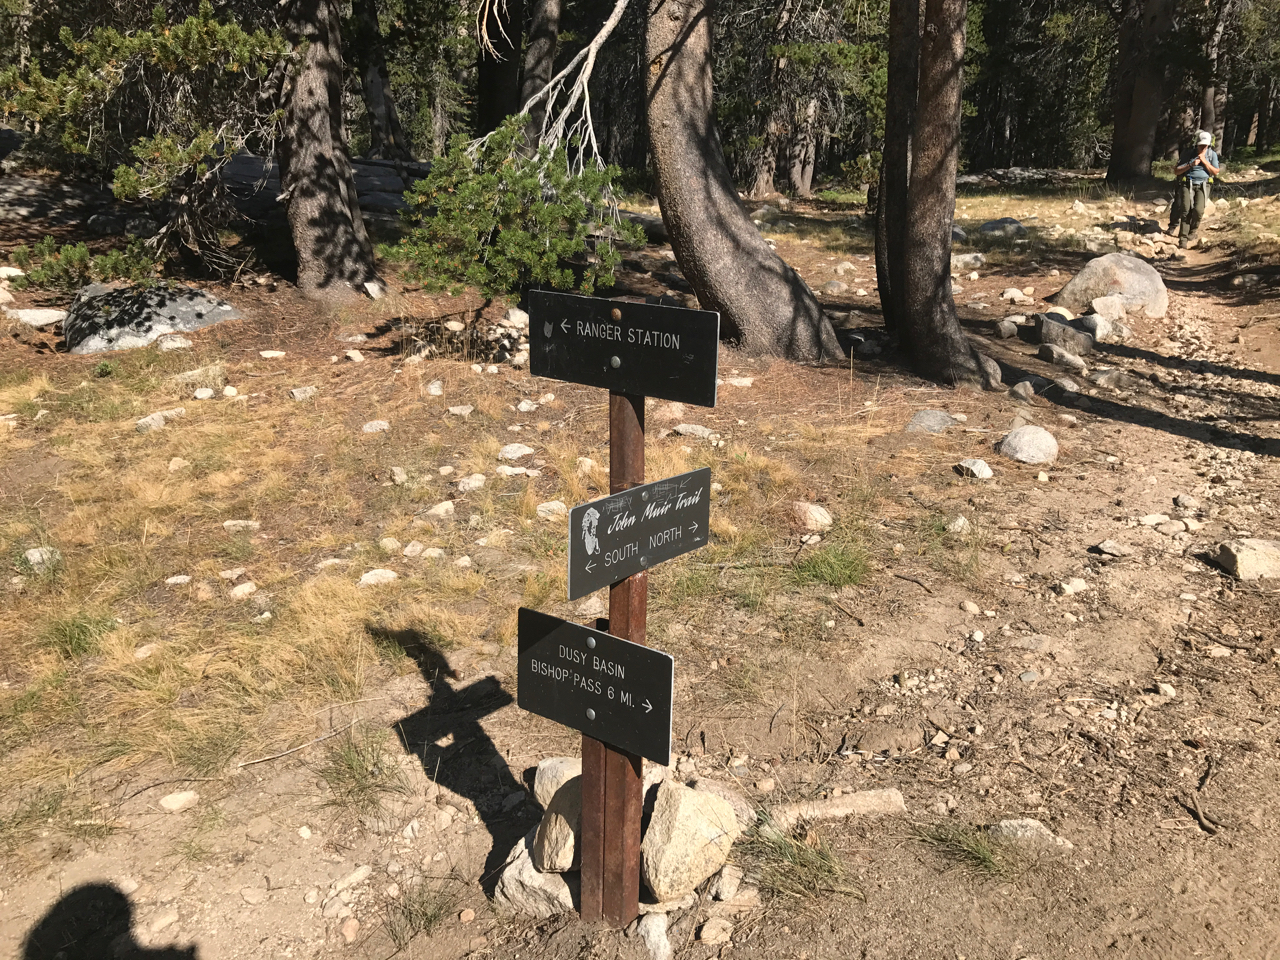 Bishop Pass Trail Junction